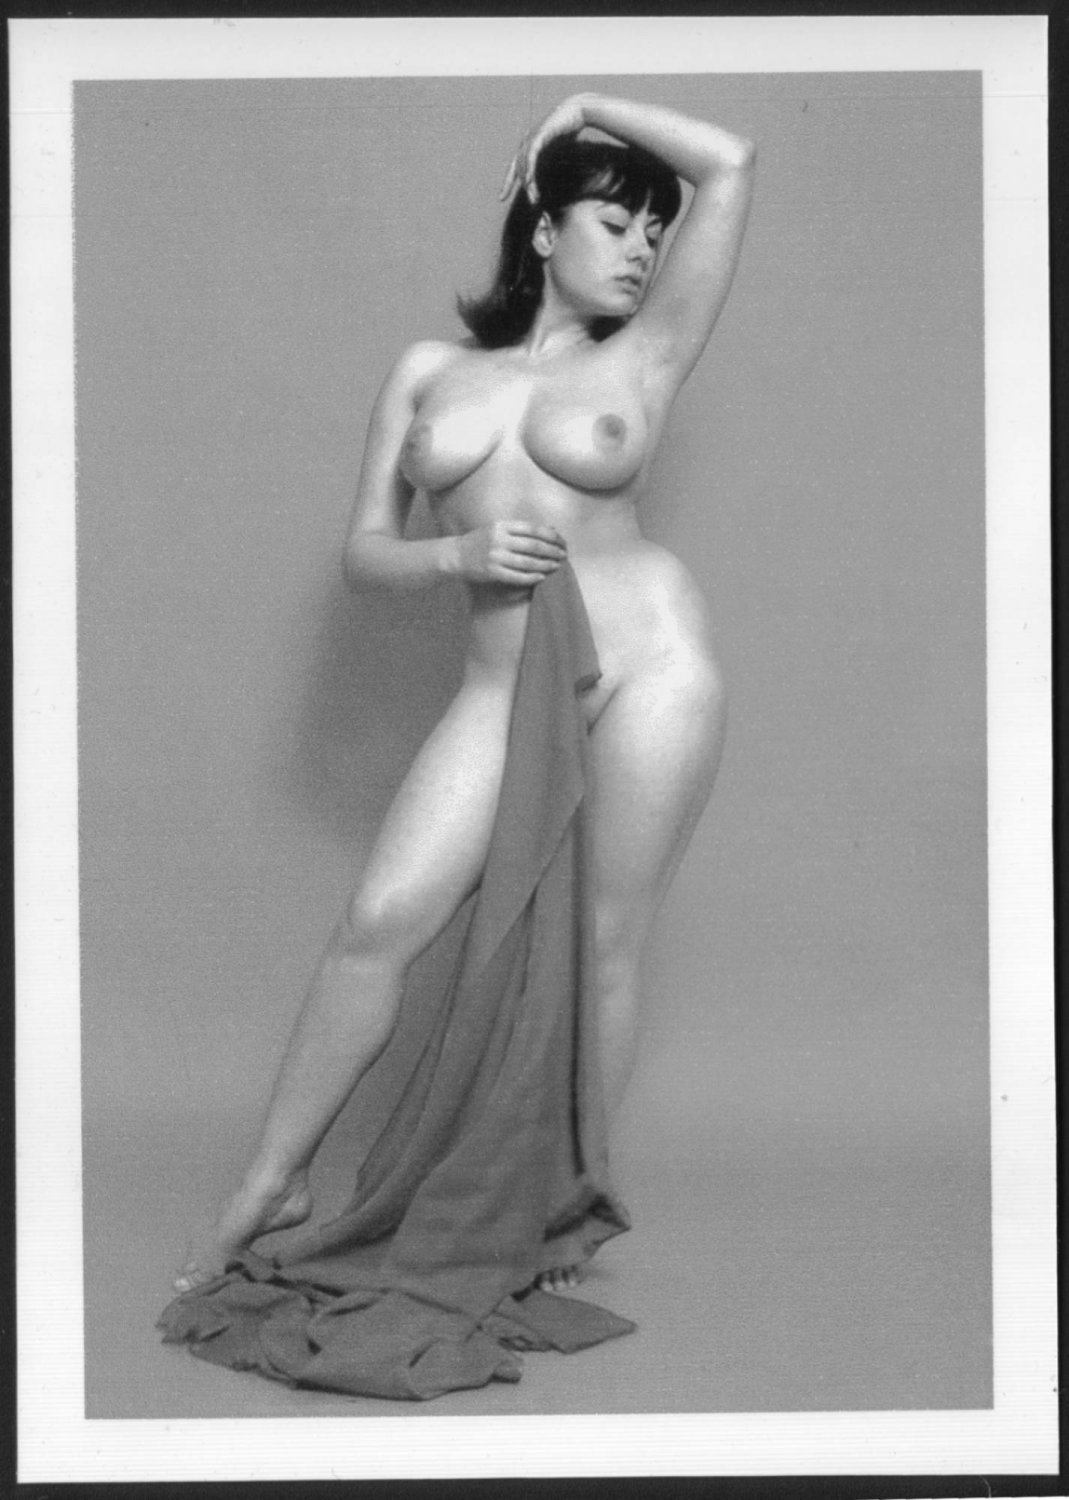 Excellent June palmer nude above told